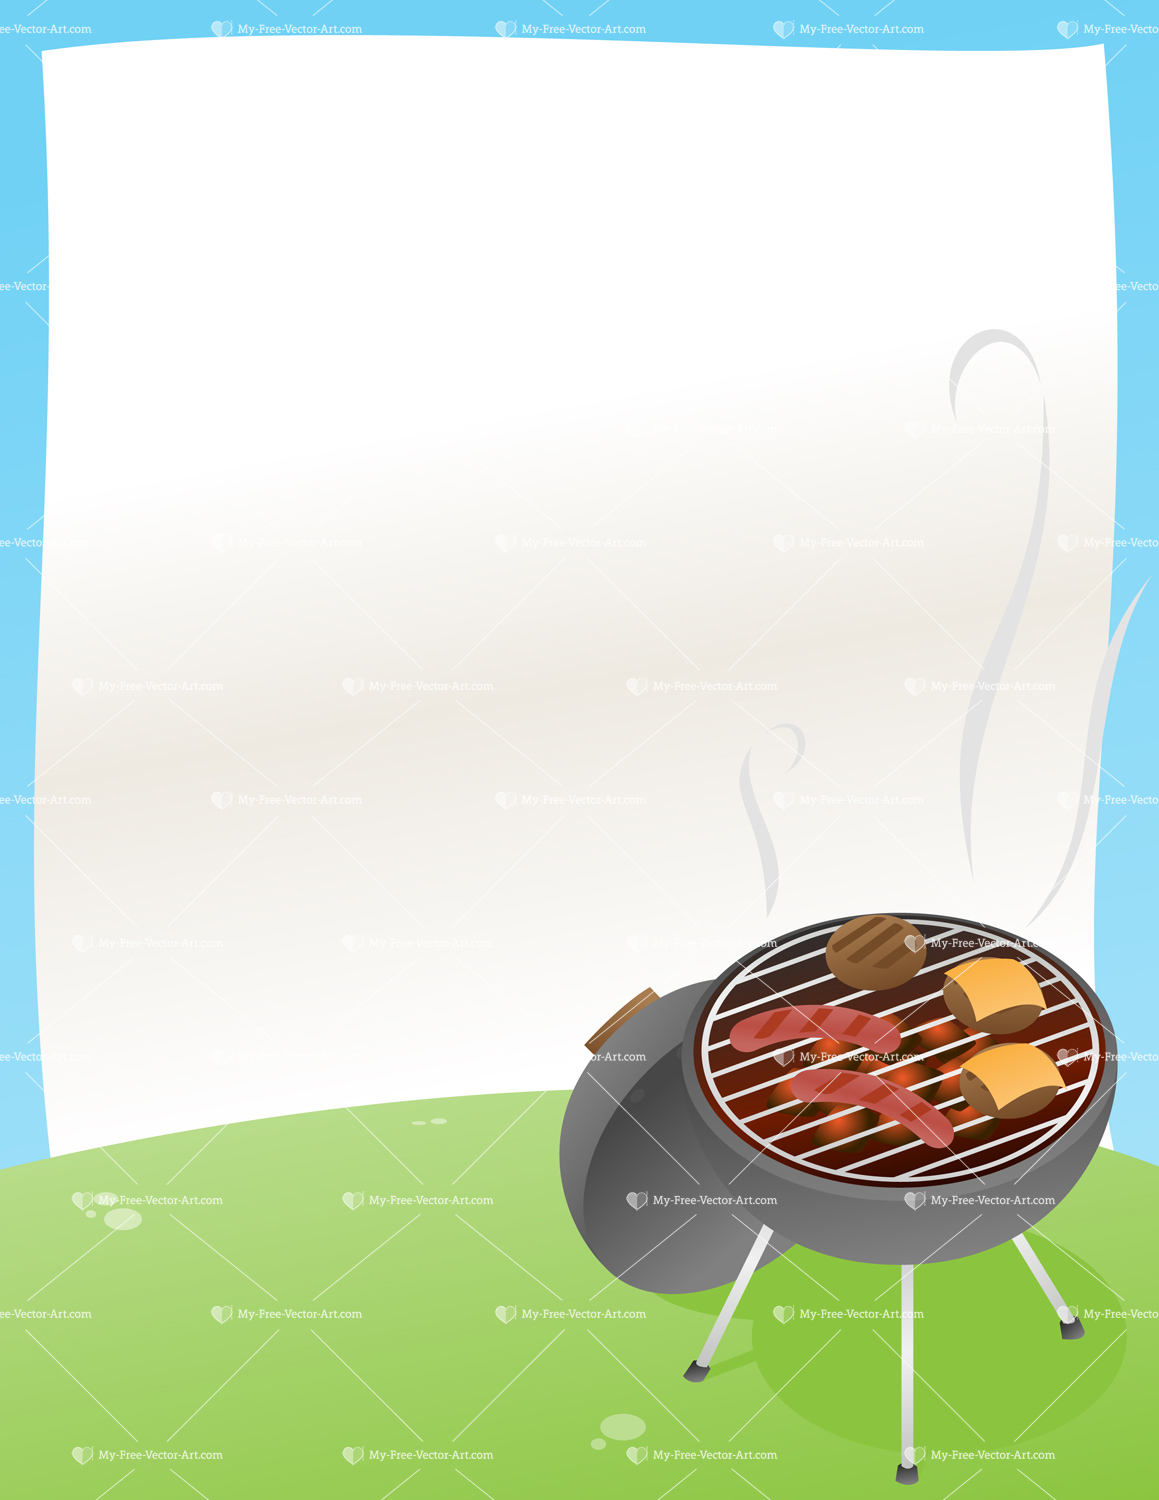 bbq announcement vector illustration of a bbq grill with a